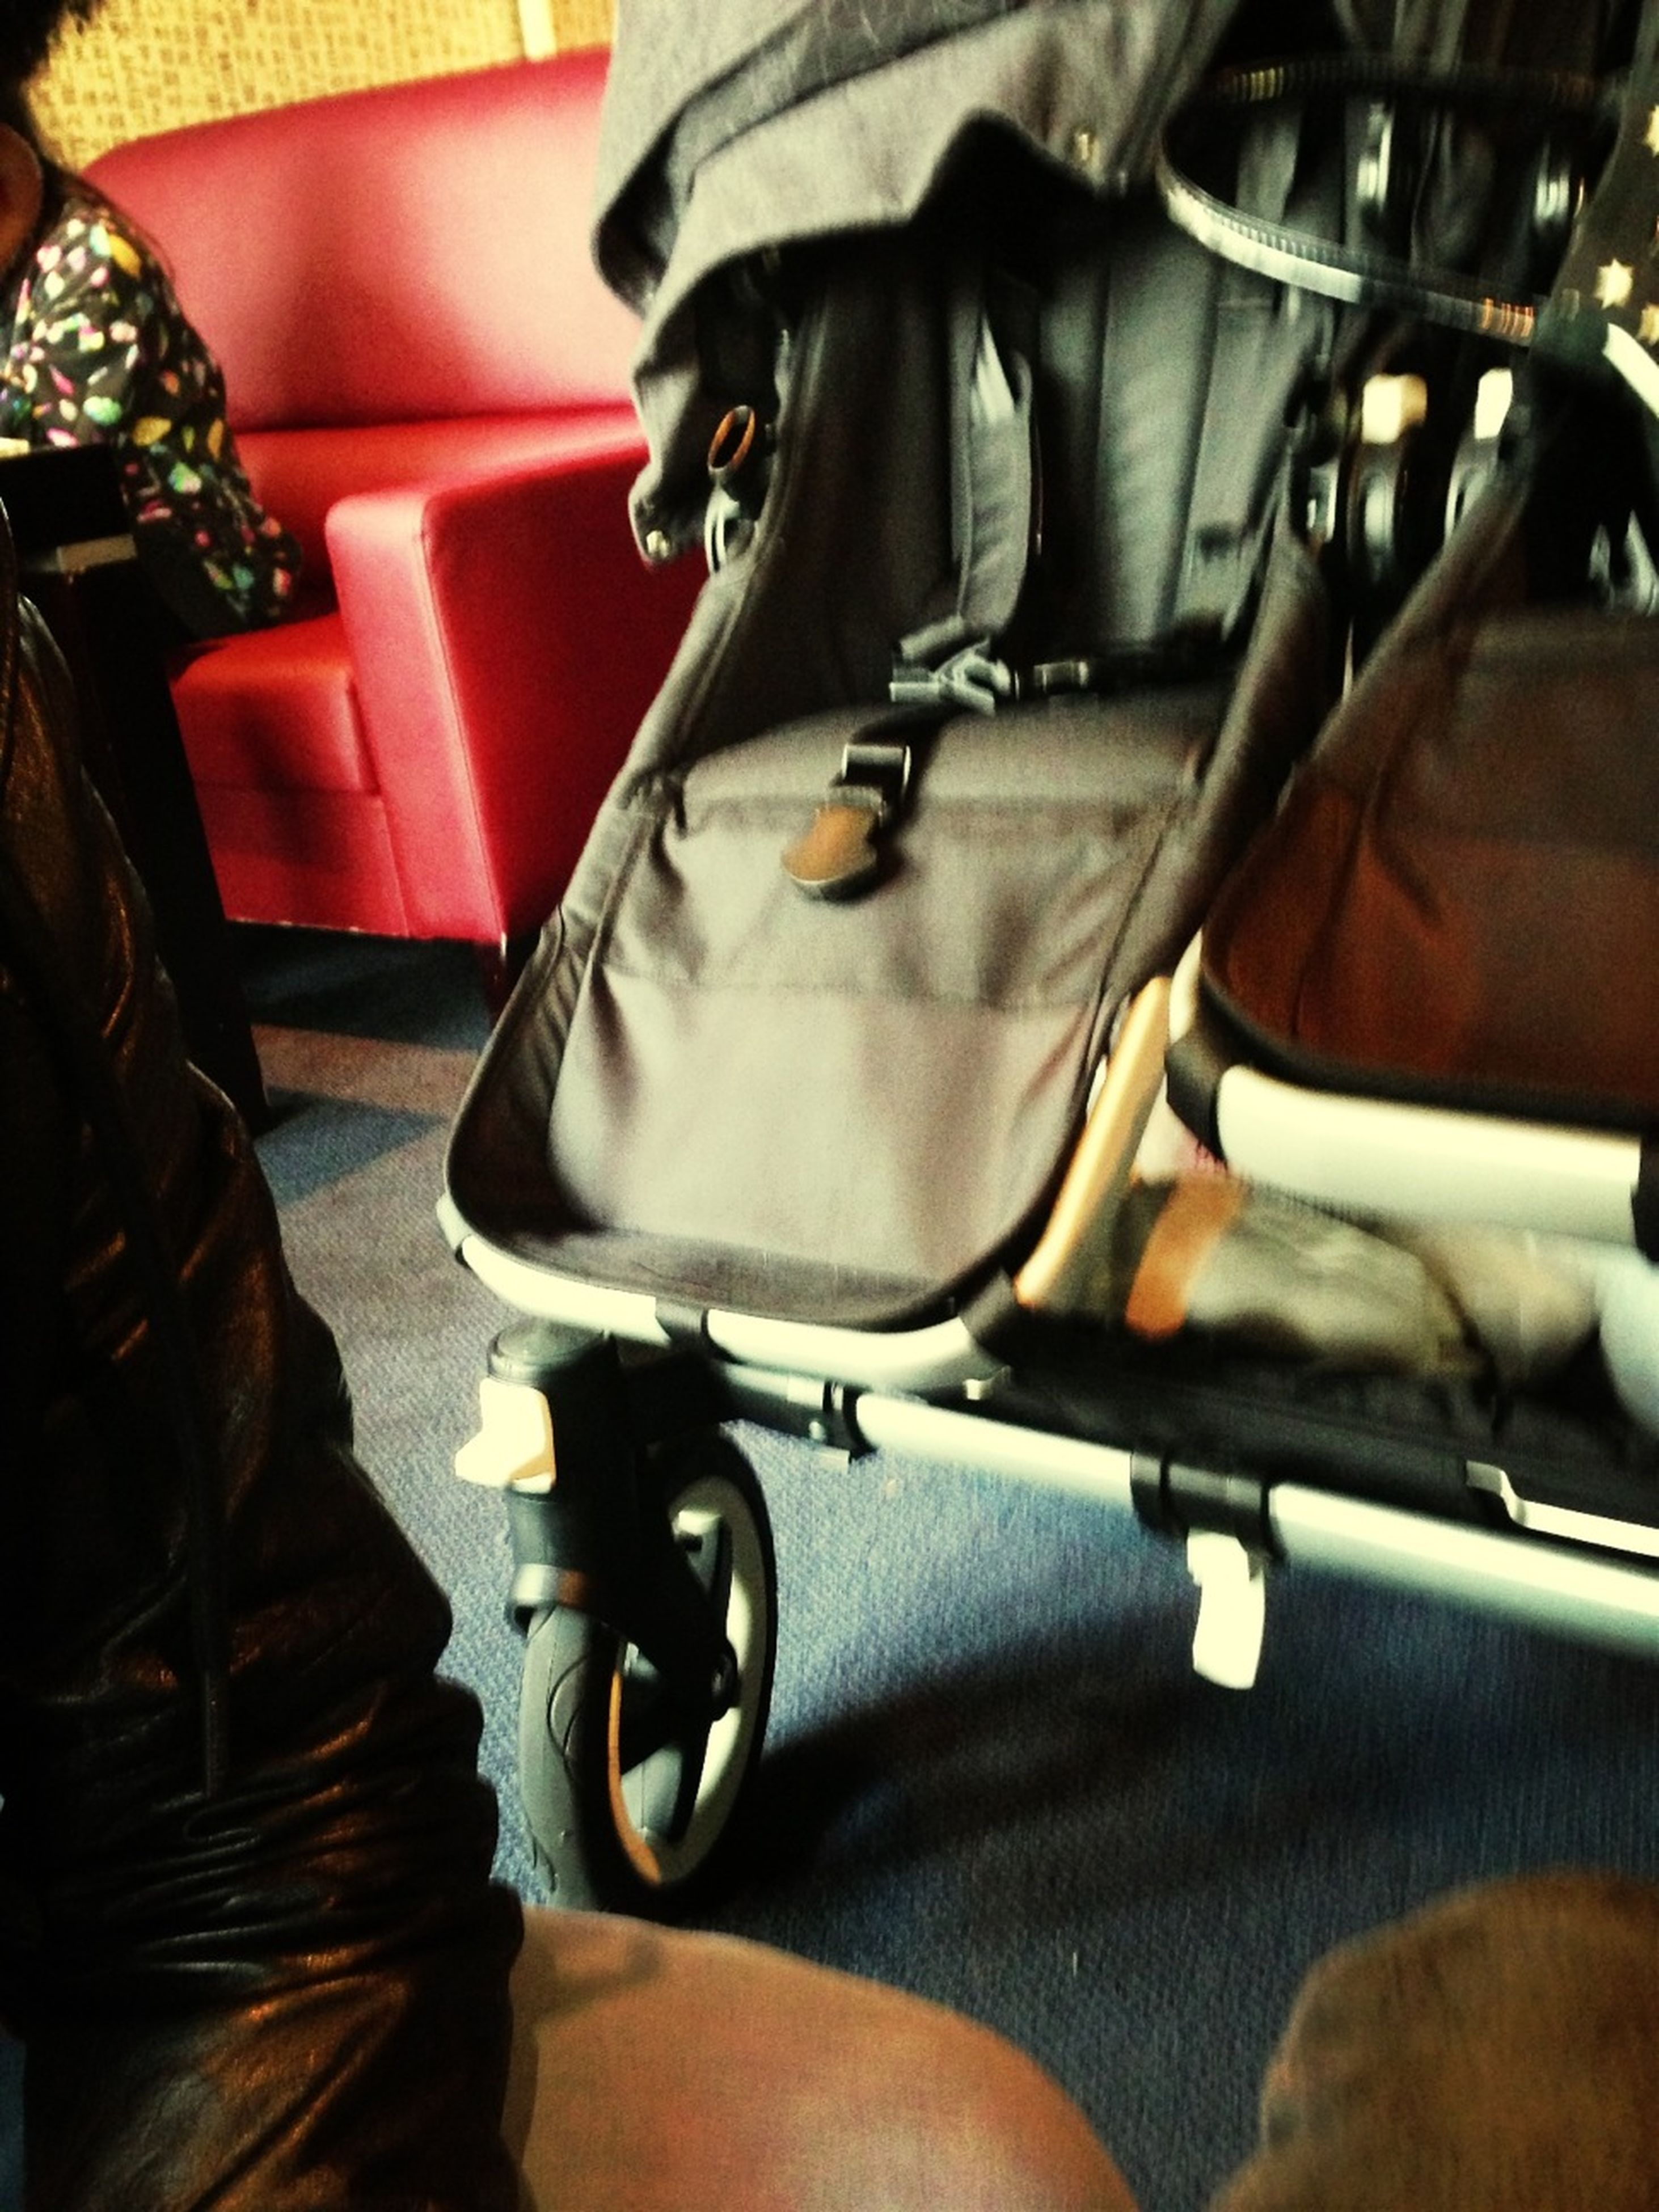 indoors, sofa, relaxation, car, sitting, red, transportation, mode of transport, chair, close-up, seat, sunlight, land vehicle, day, textile, no people, bed, window, part of, comfortable